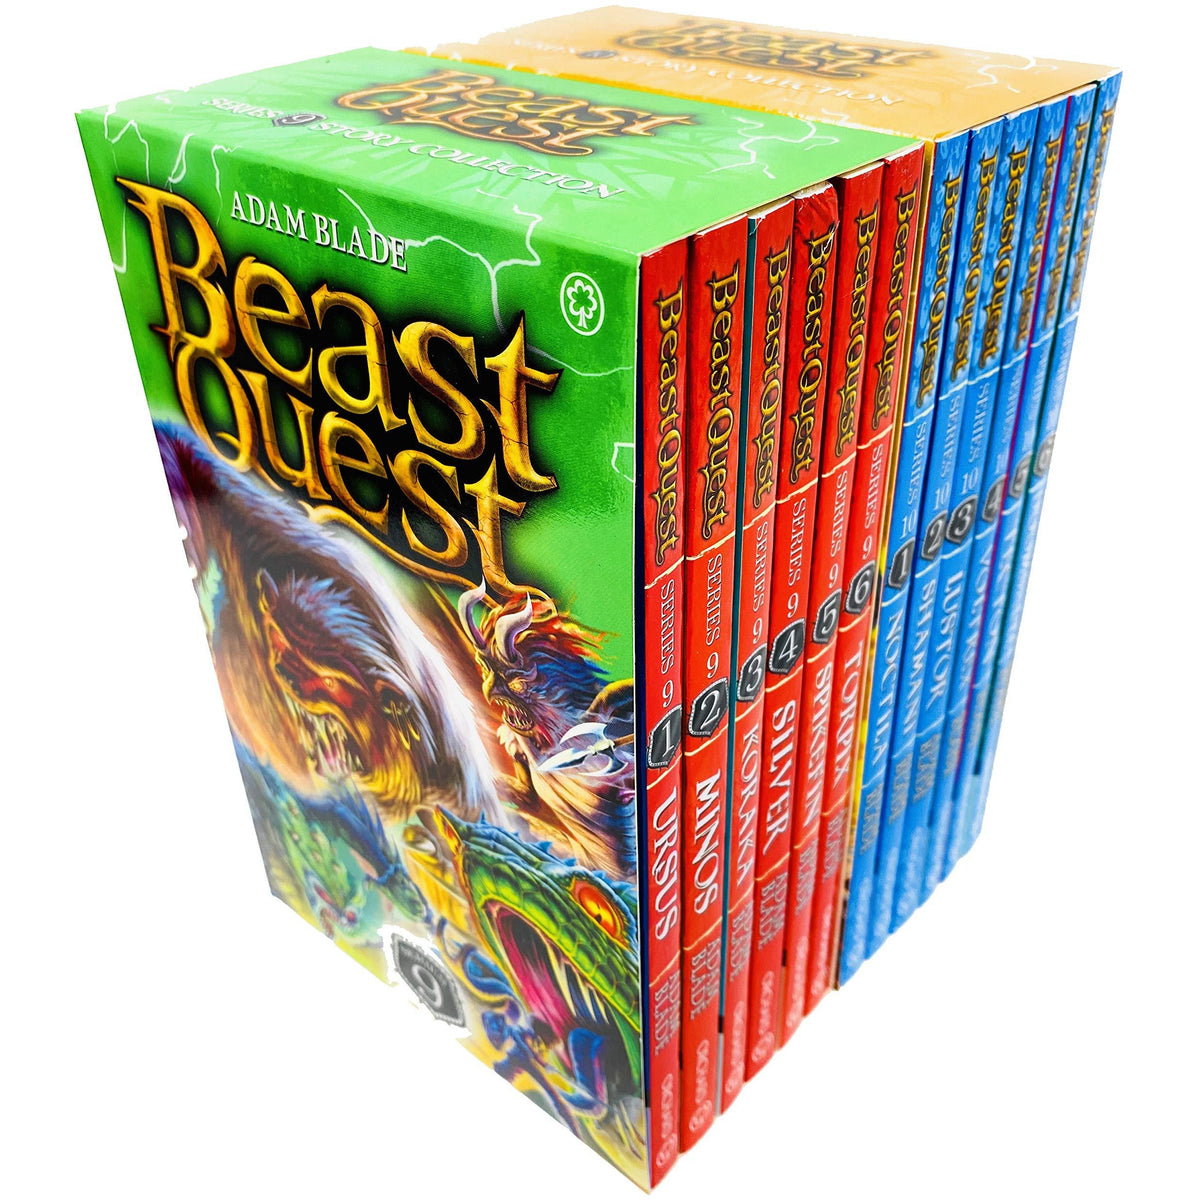 beast quest series 9  10 box sets 12 books collection